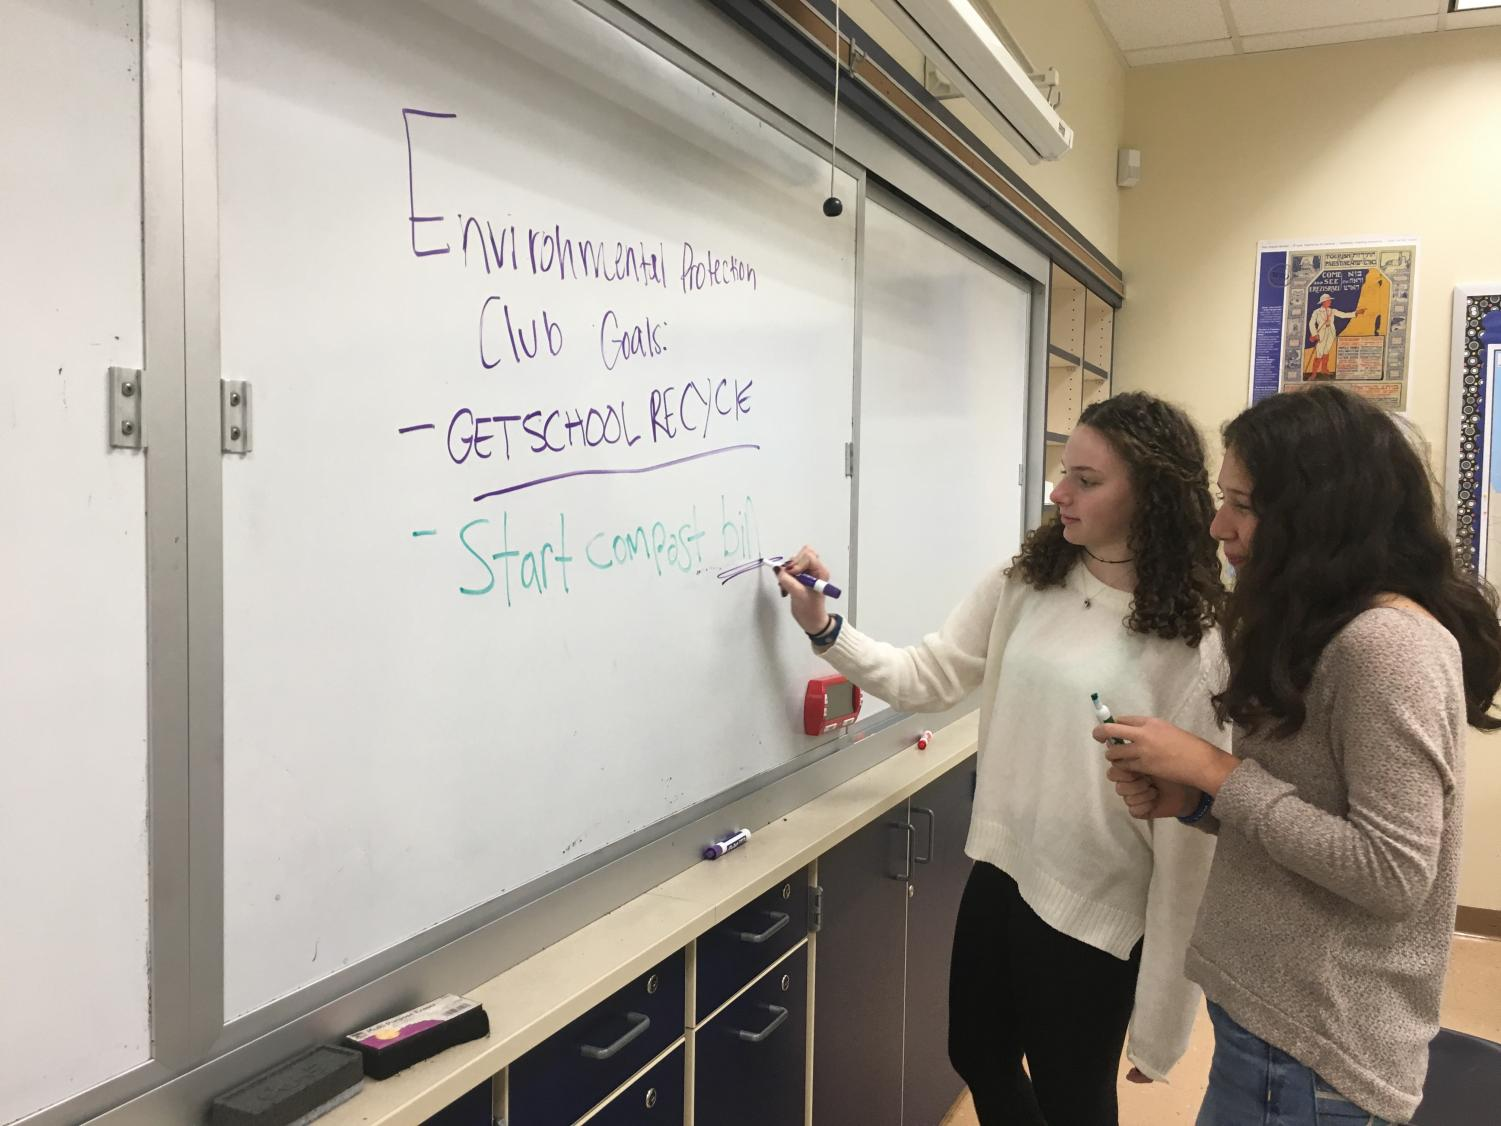 Environmental Awareness Club co-founders Dora Mendelson and Addie Bard work on possible goals that would make a more environmentally-conscious school.